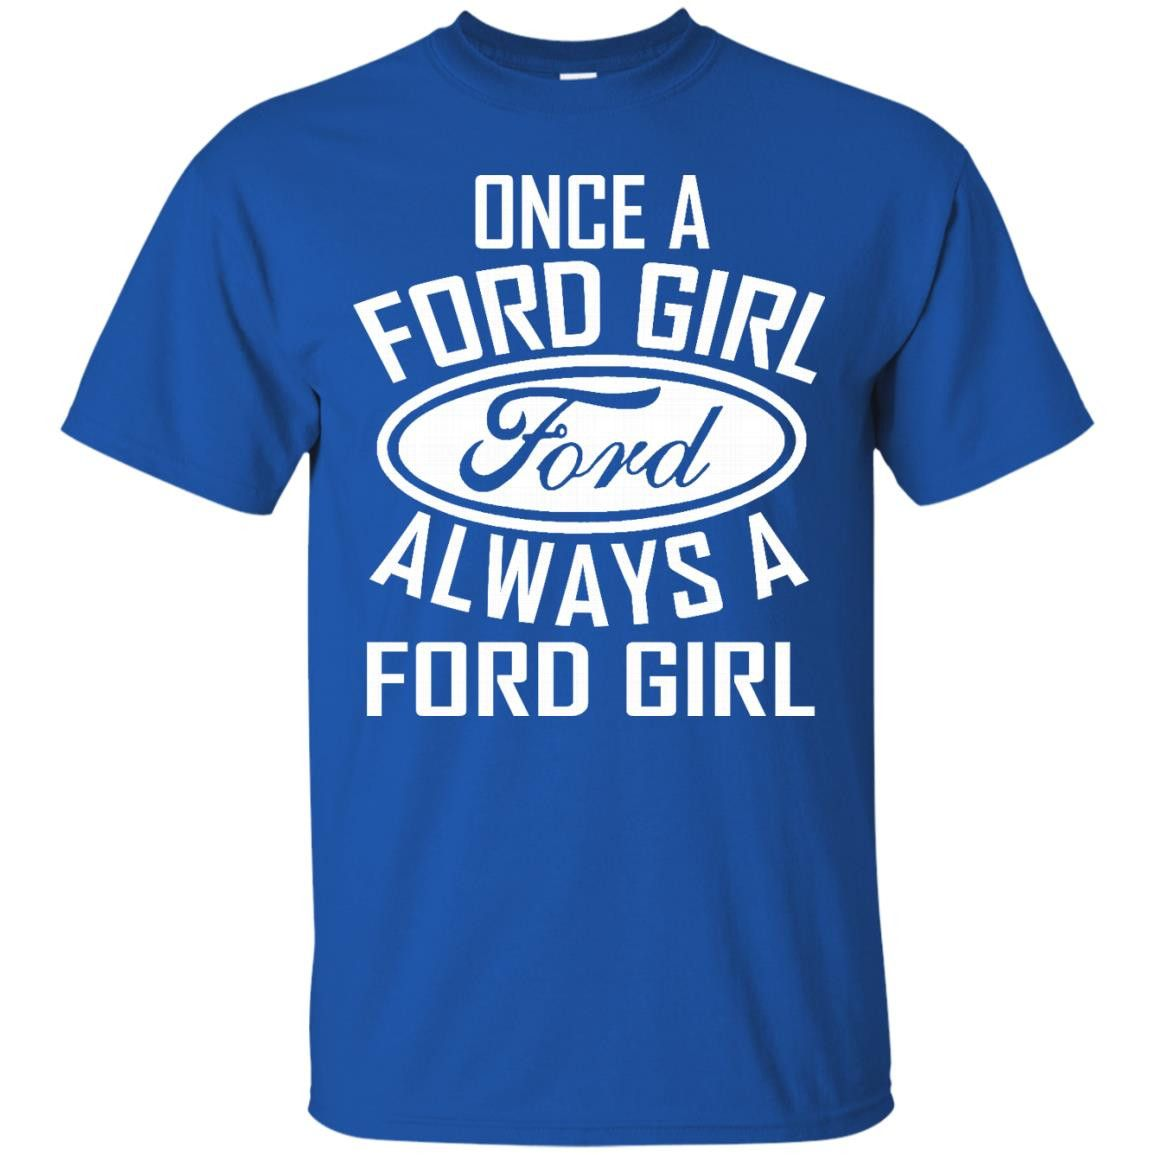 ford t shirts once a ford girl always a ford girl shirts. Black Bedroom Furniture Sets. Home Design Ideas